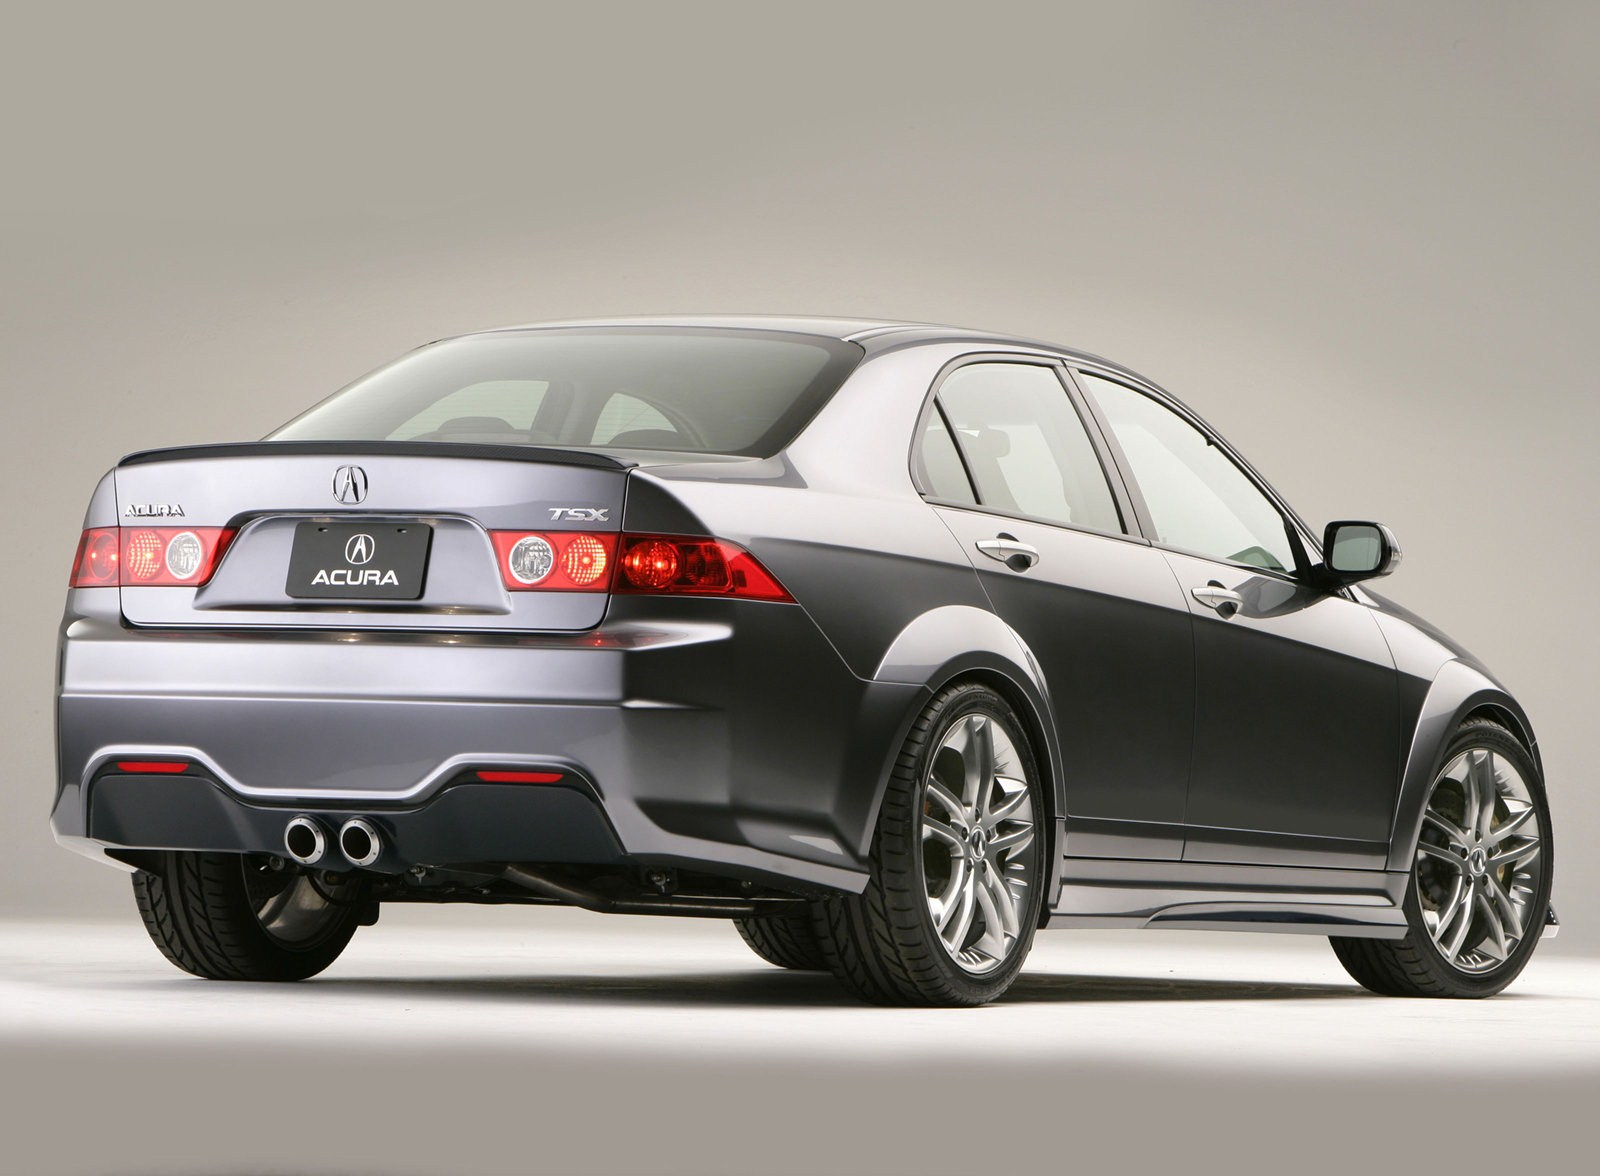 Best Wallpapers: Acura Tsx Wallpapers